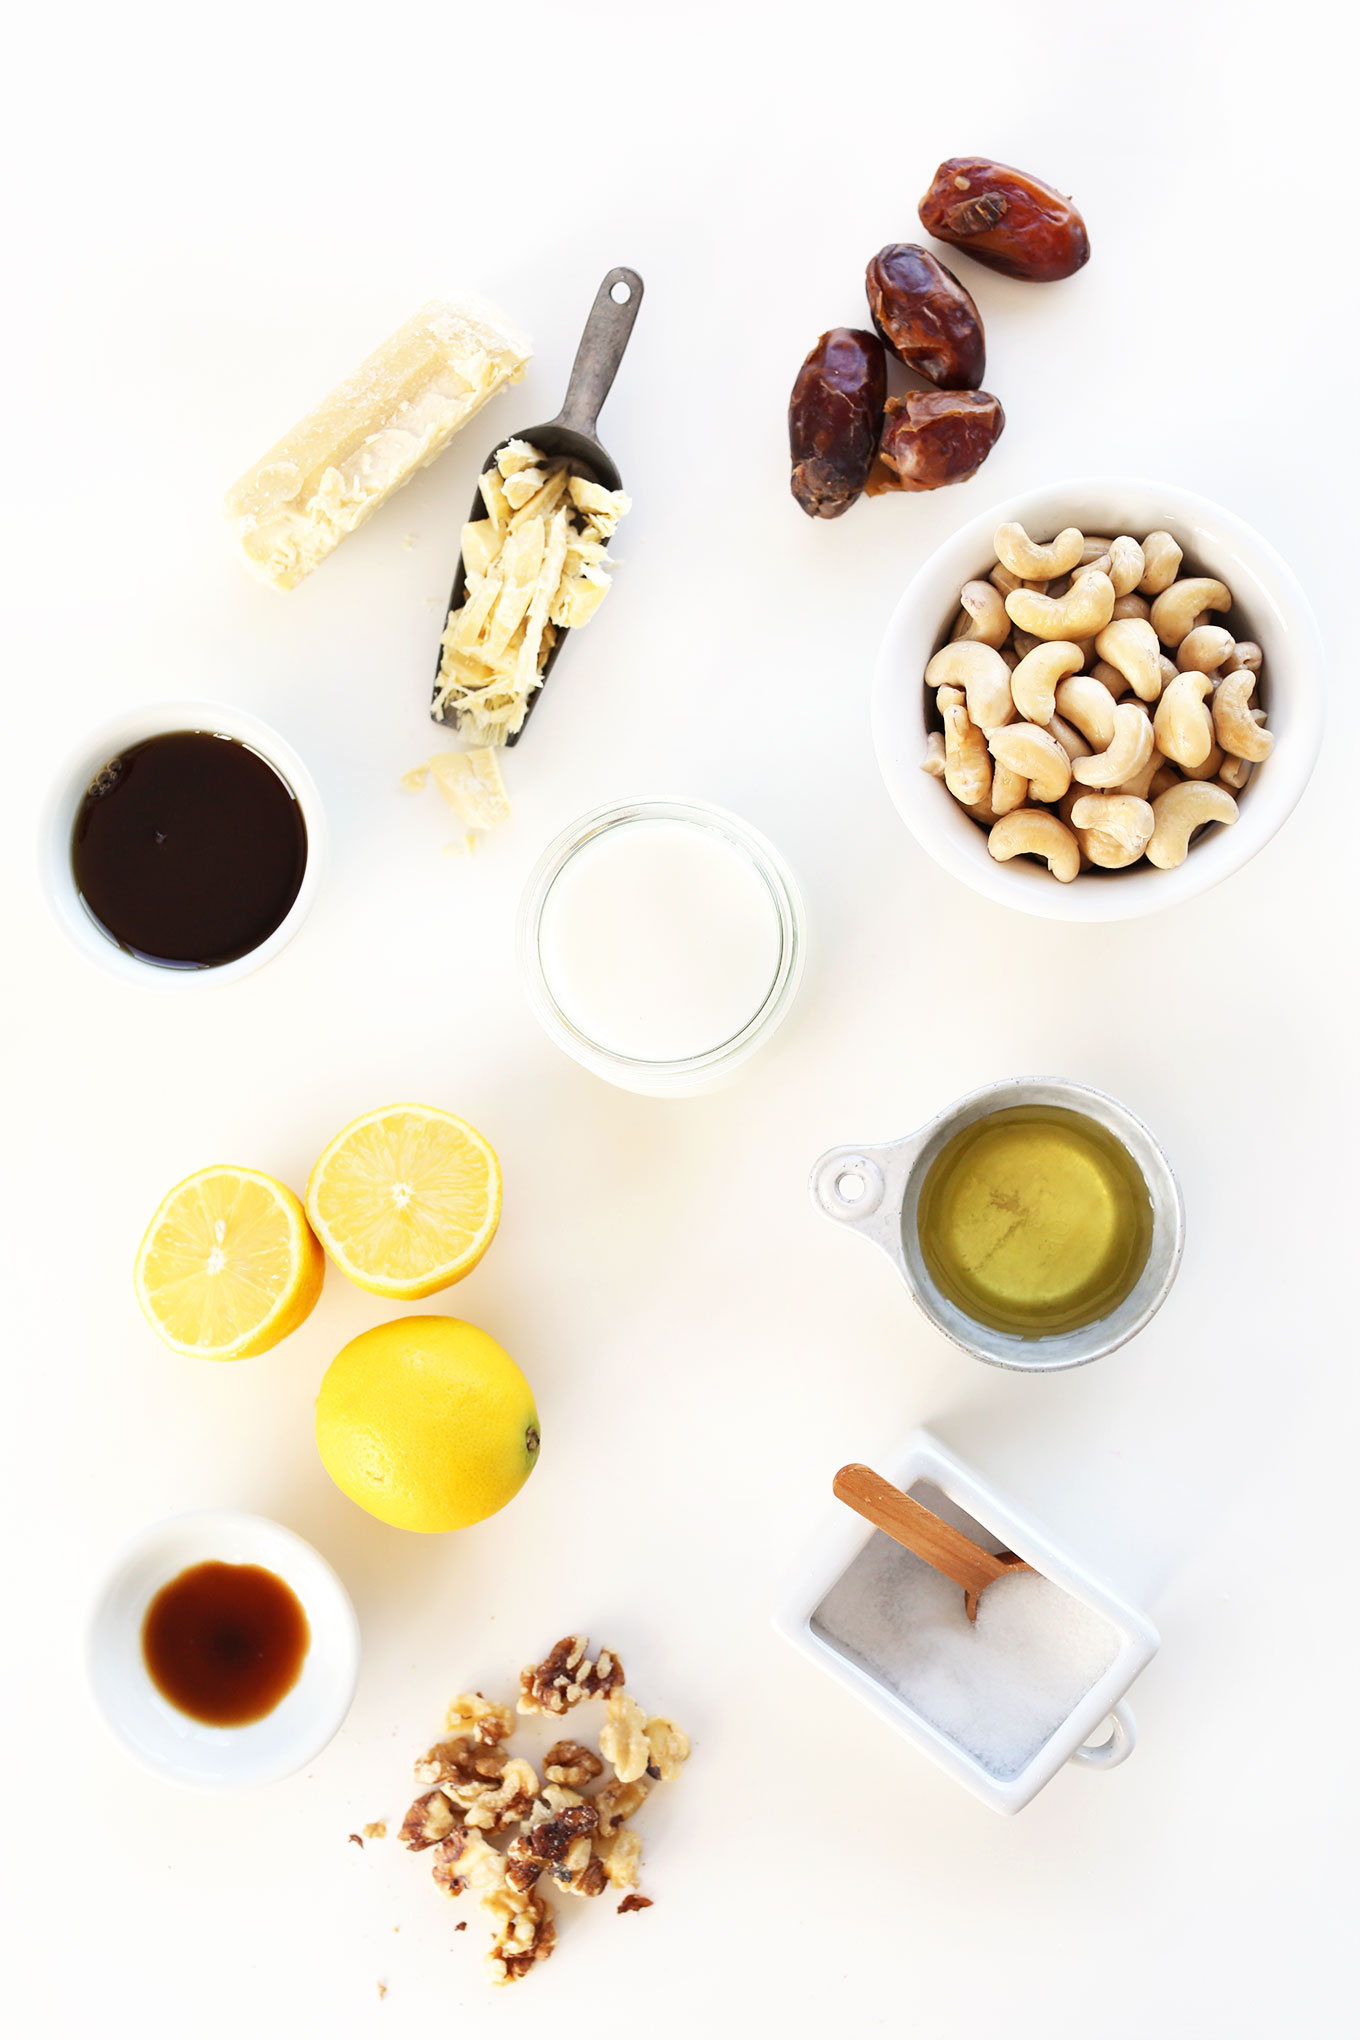 Ingredients laid out for making delicious gluten-free vegan White Chocolate Lemon Cheesecakes